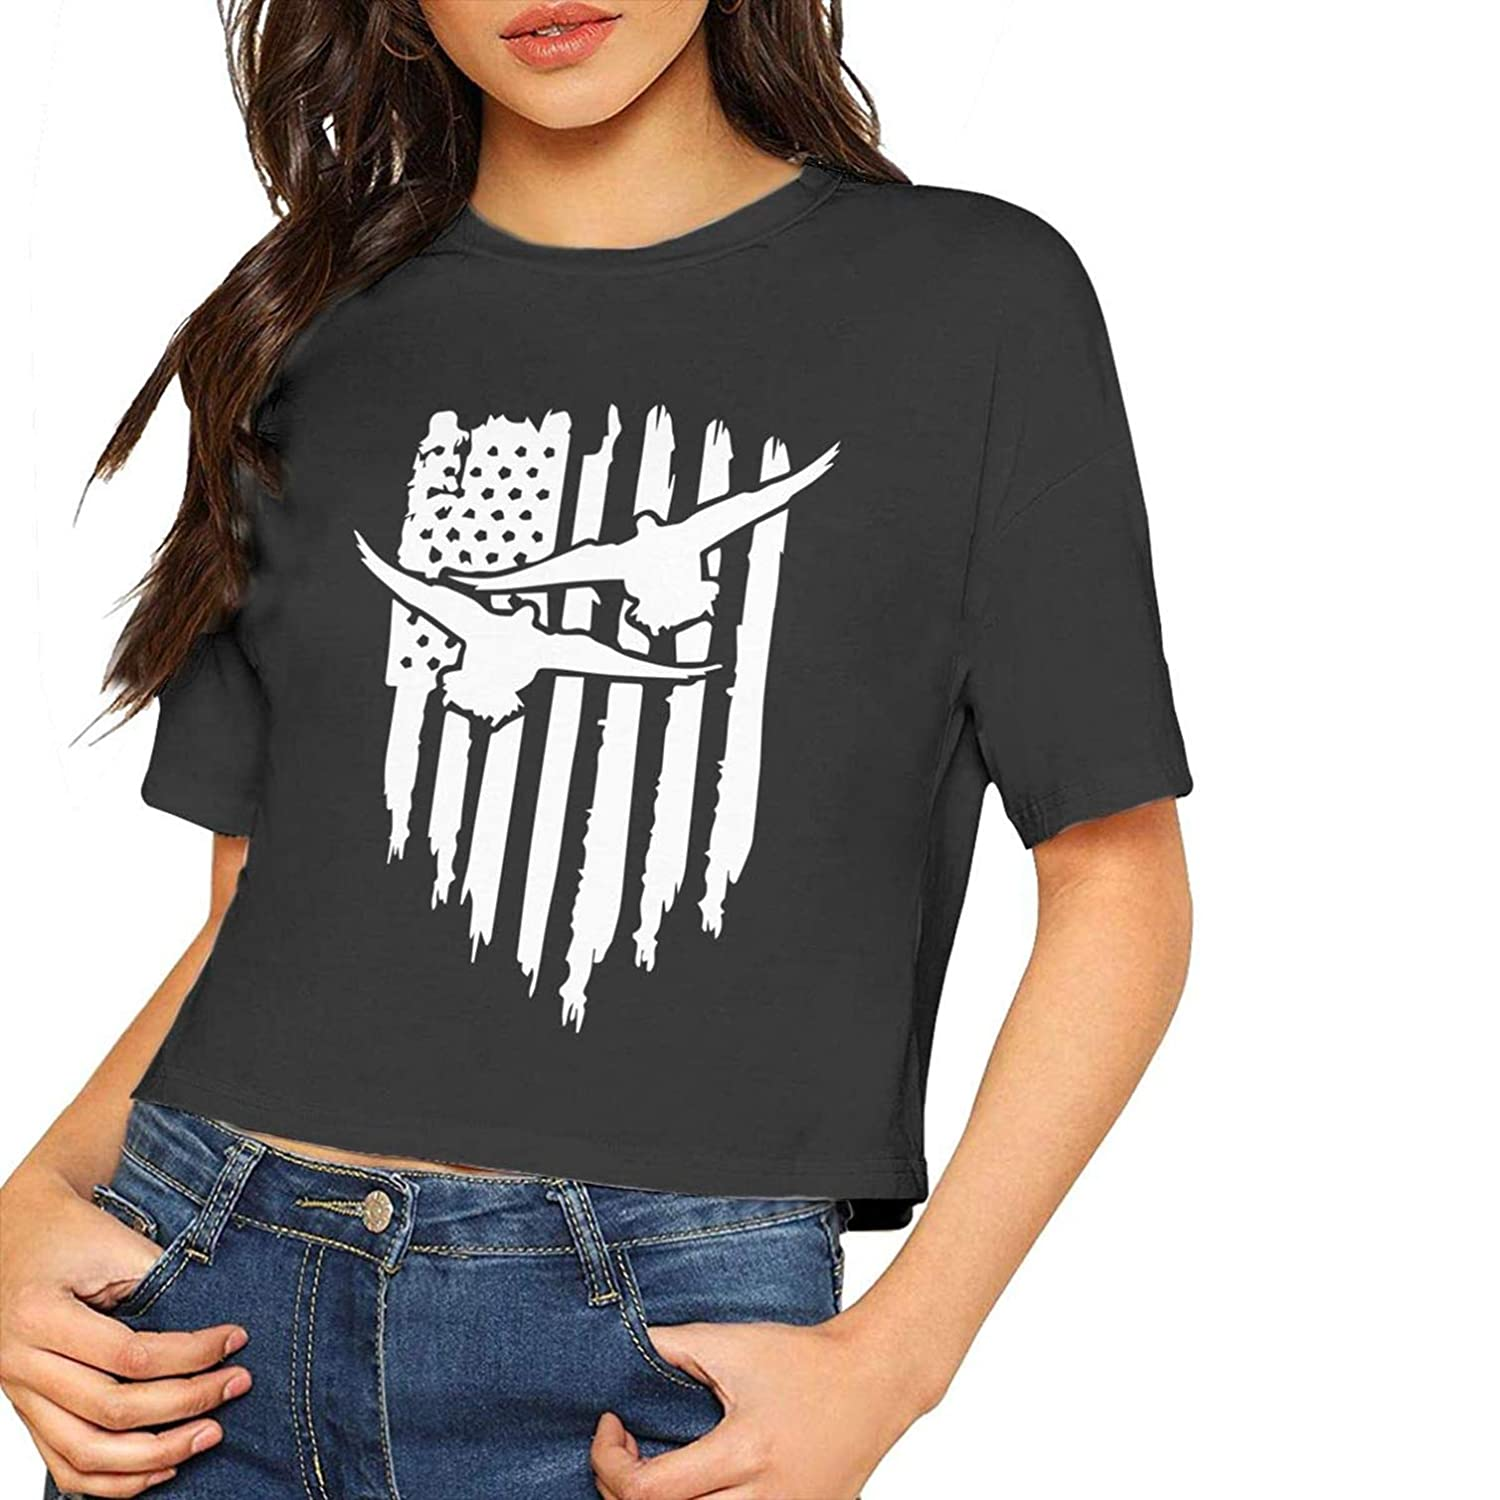 Fashion Womens Round Neck Crop Top American Duck Hunter Graphic Top Tee